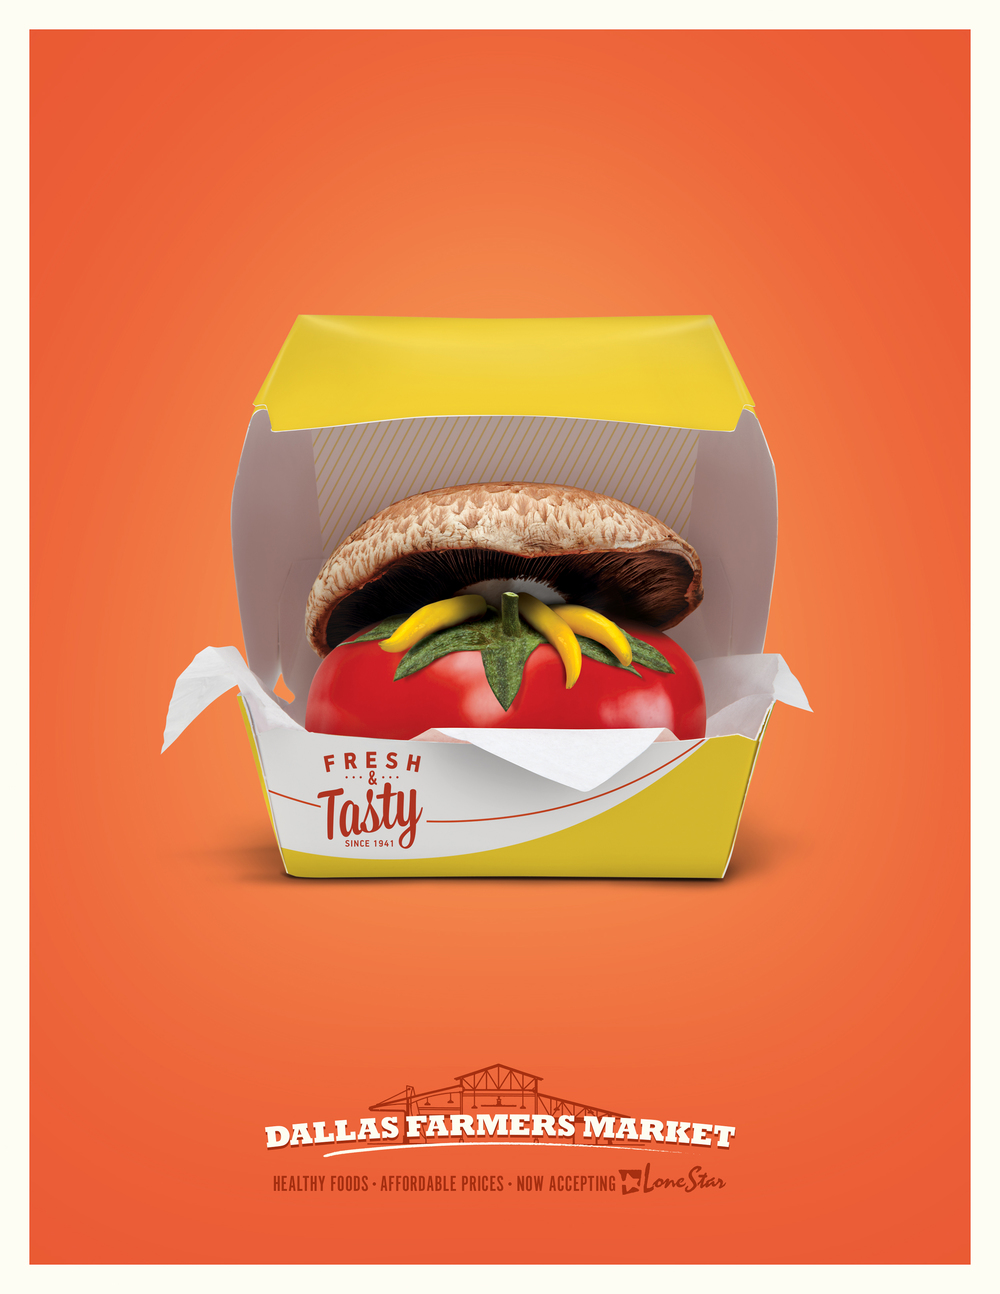 ryan-smith-creative-director-dallas-farmers-market-burger